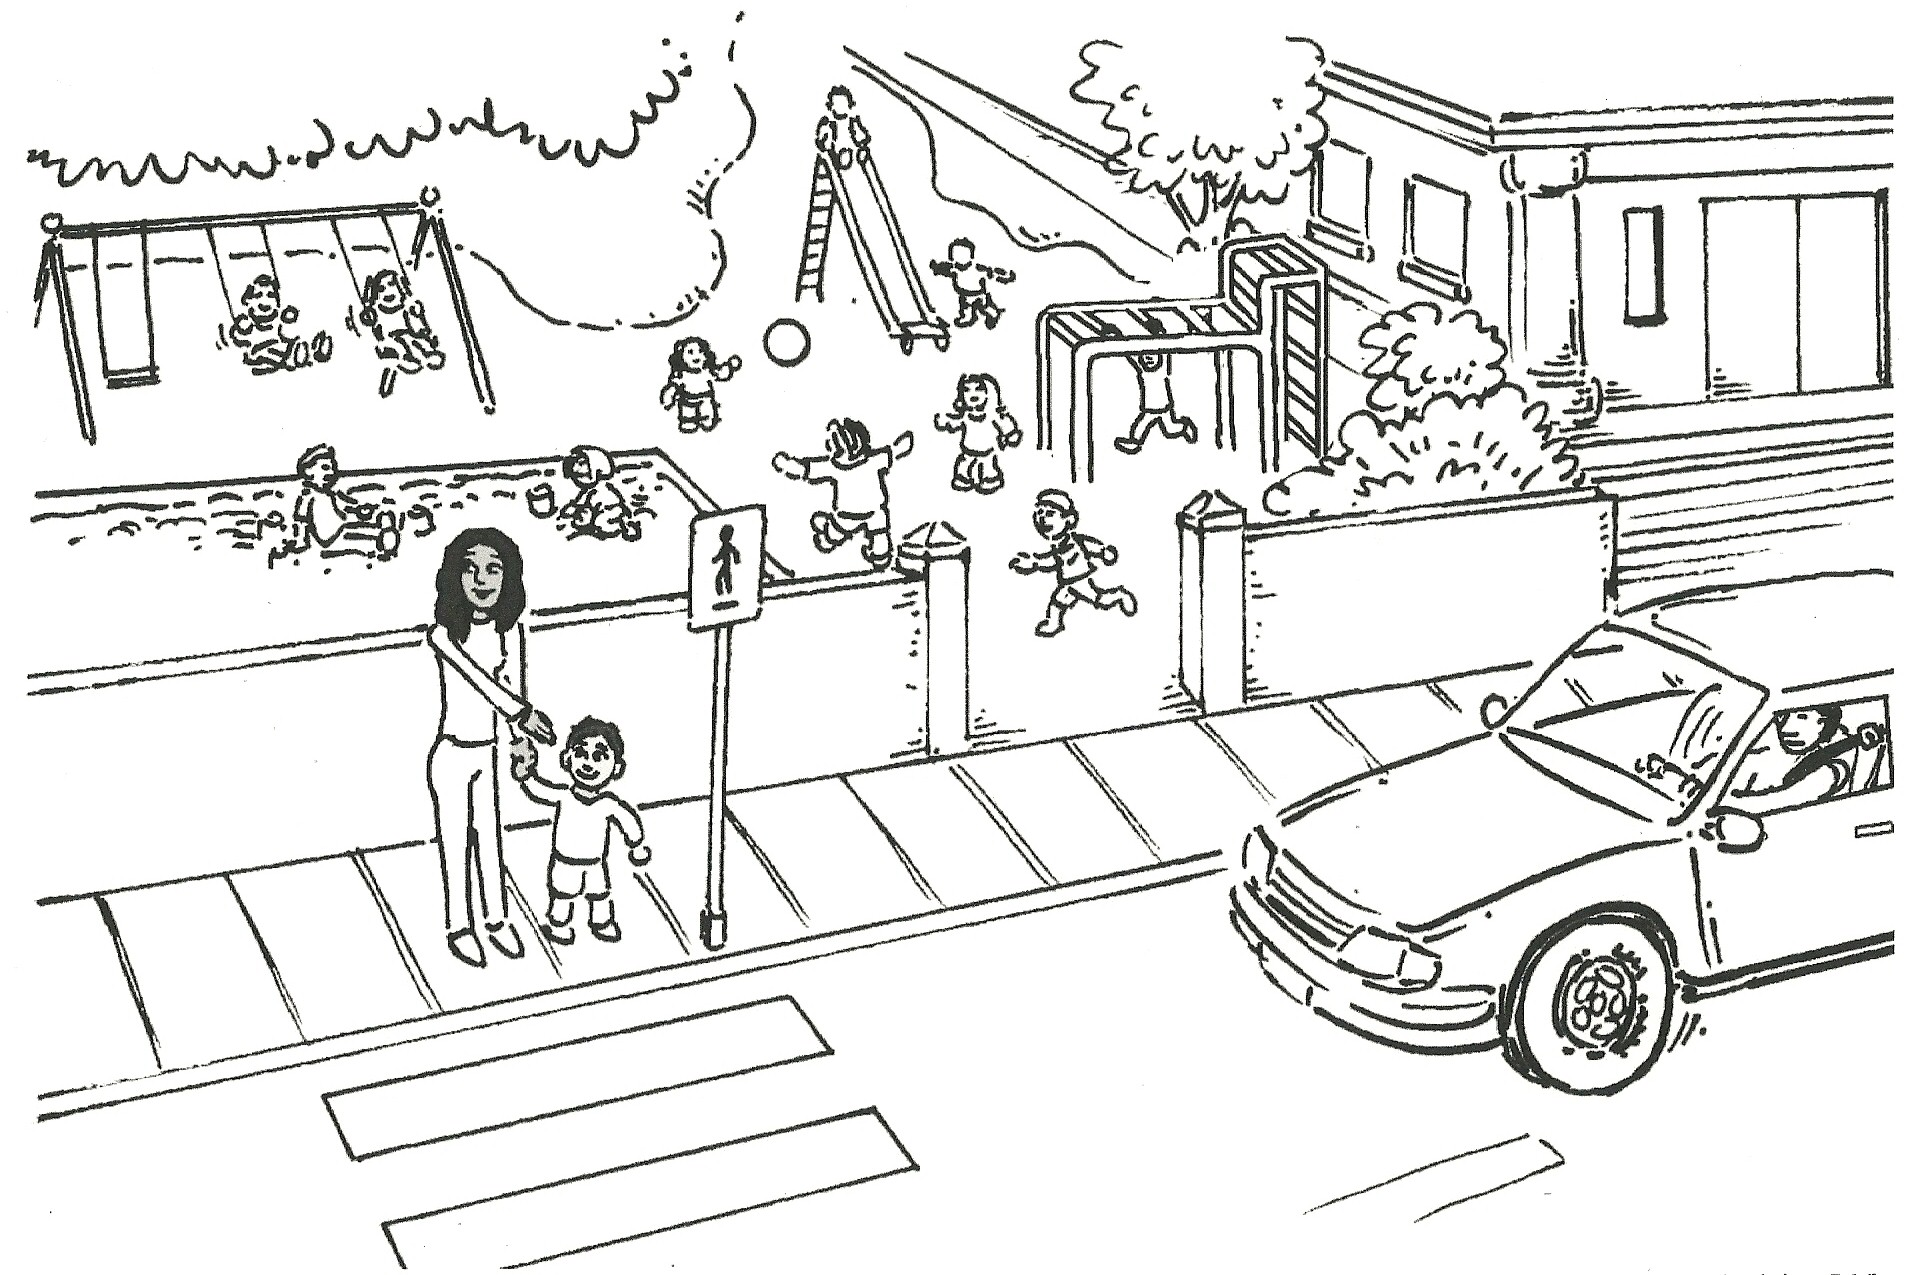 Colouring sheets for road safety - Get Free High Quality Hd Wallpapers Coloring Pages Of Zebra Crossing